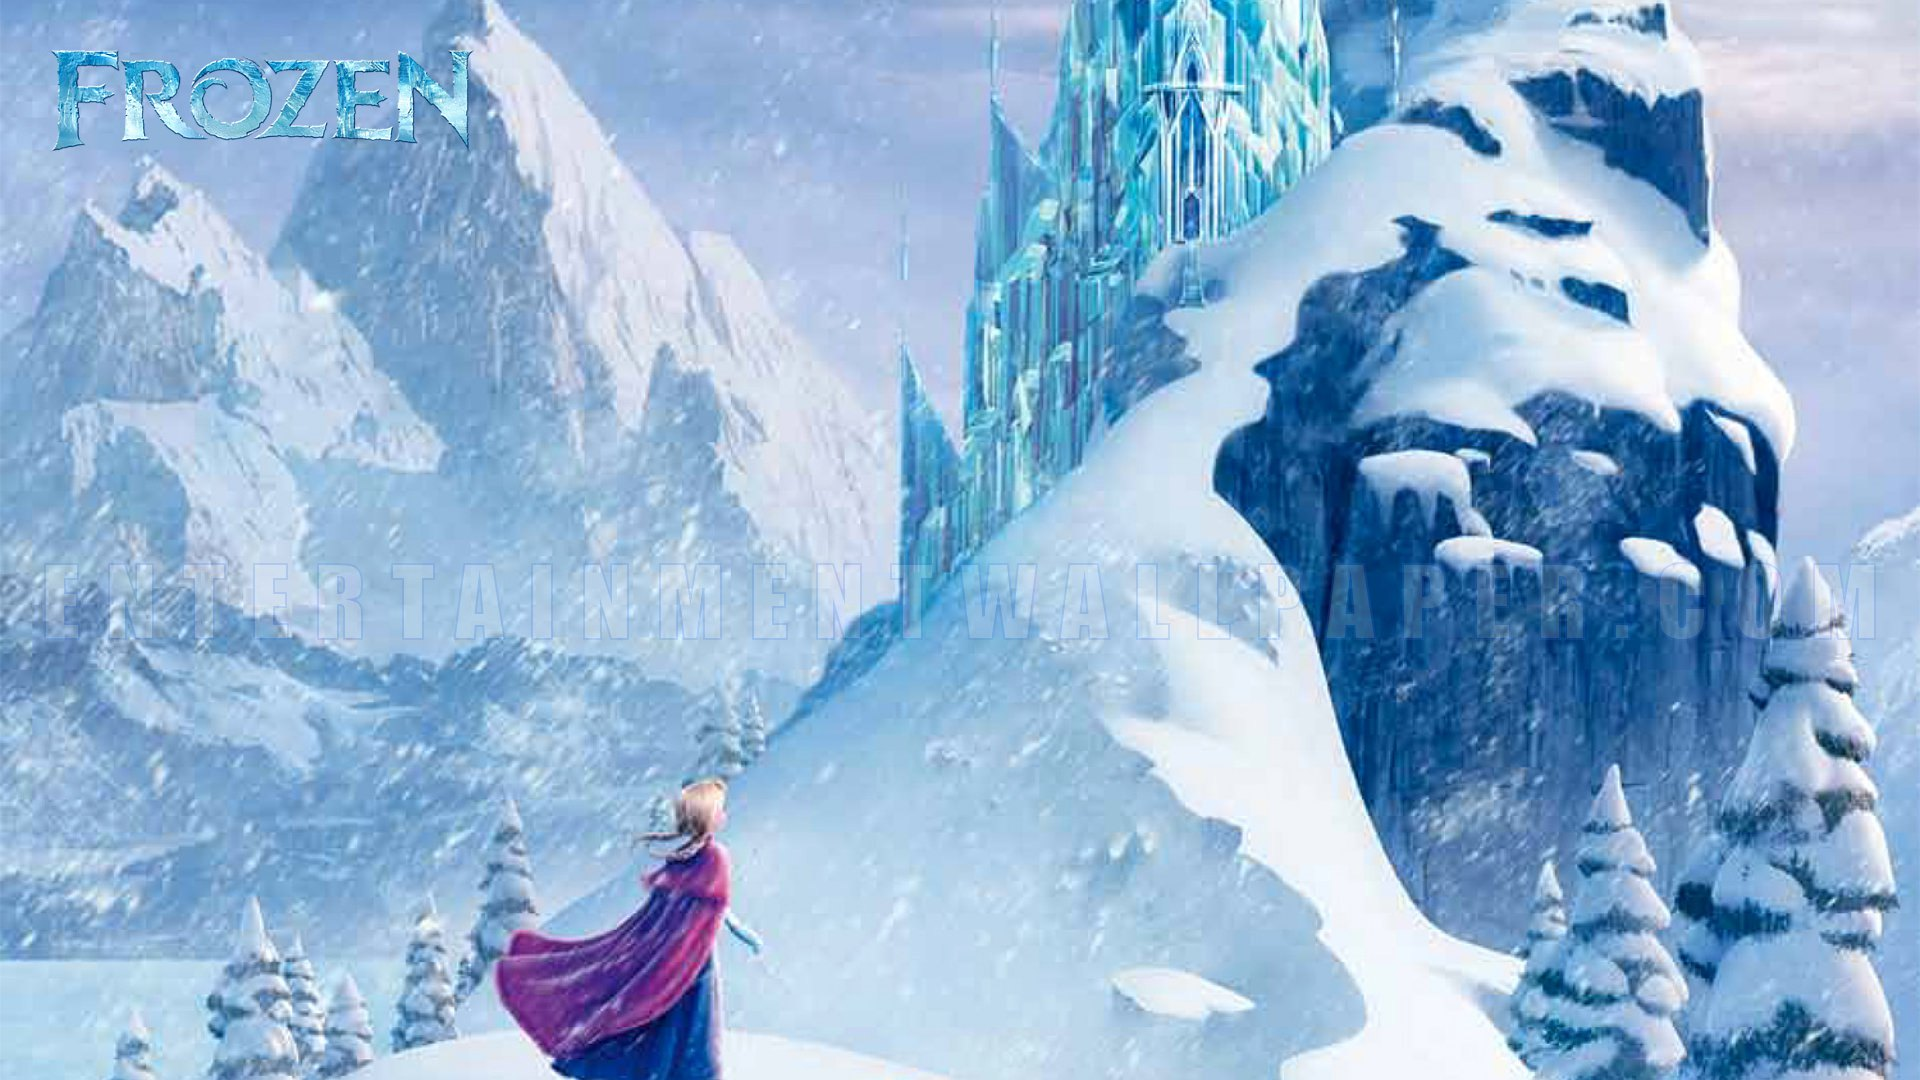 Frozen u2013 The cold never bothered me anyway! Disneyu2019s ...